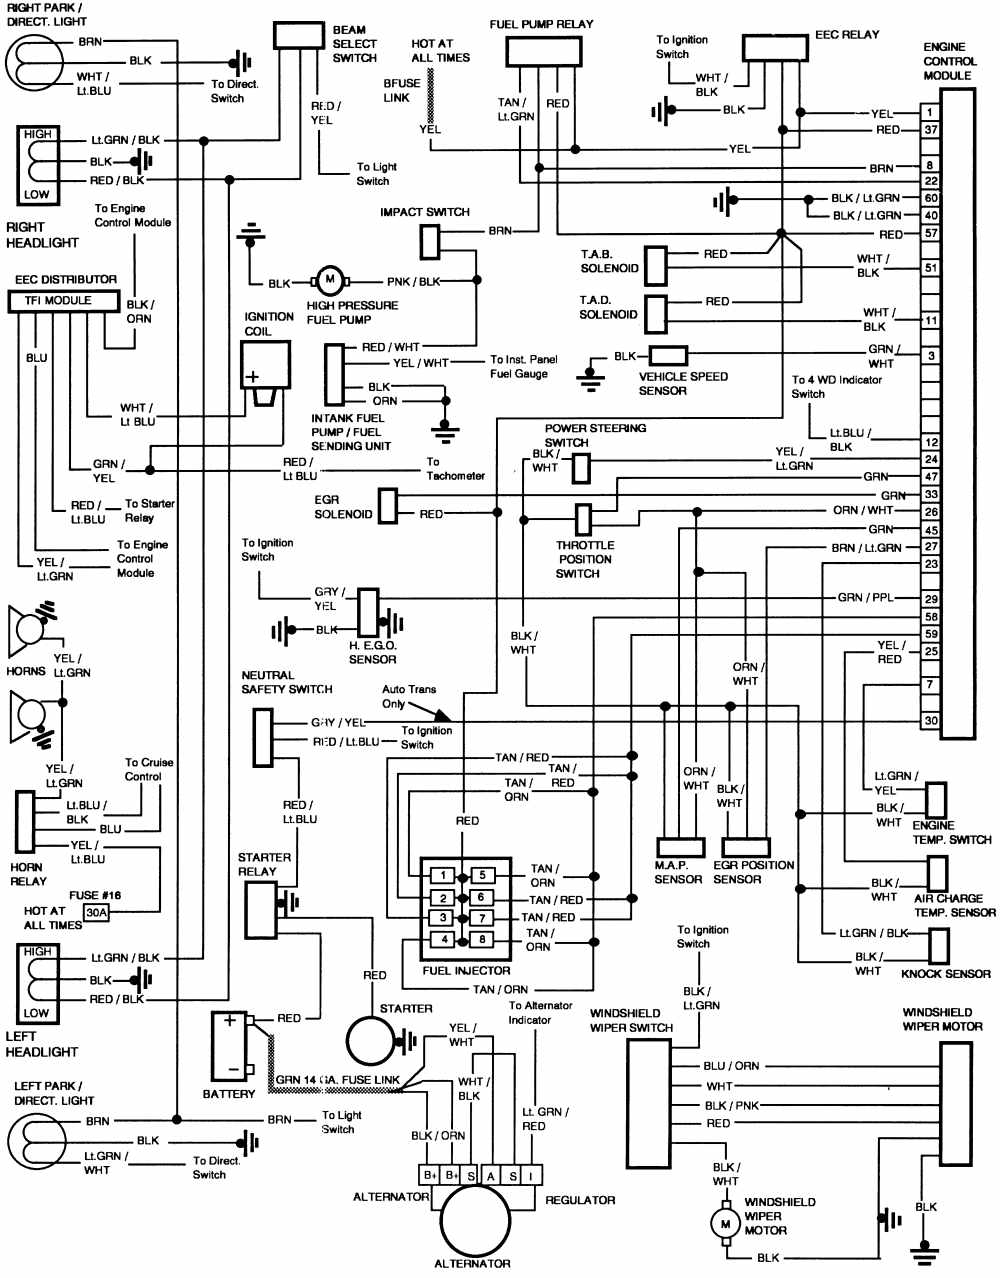 1990 ford f 250 headlight wiring diagram 1990 ford f 250 ignition wiring diagram ford f-250 1986 engine control module wiring diagram | all ...